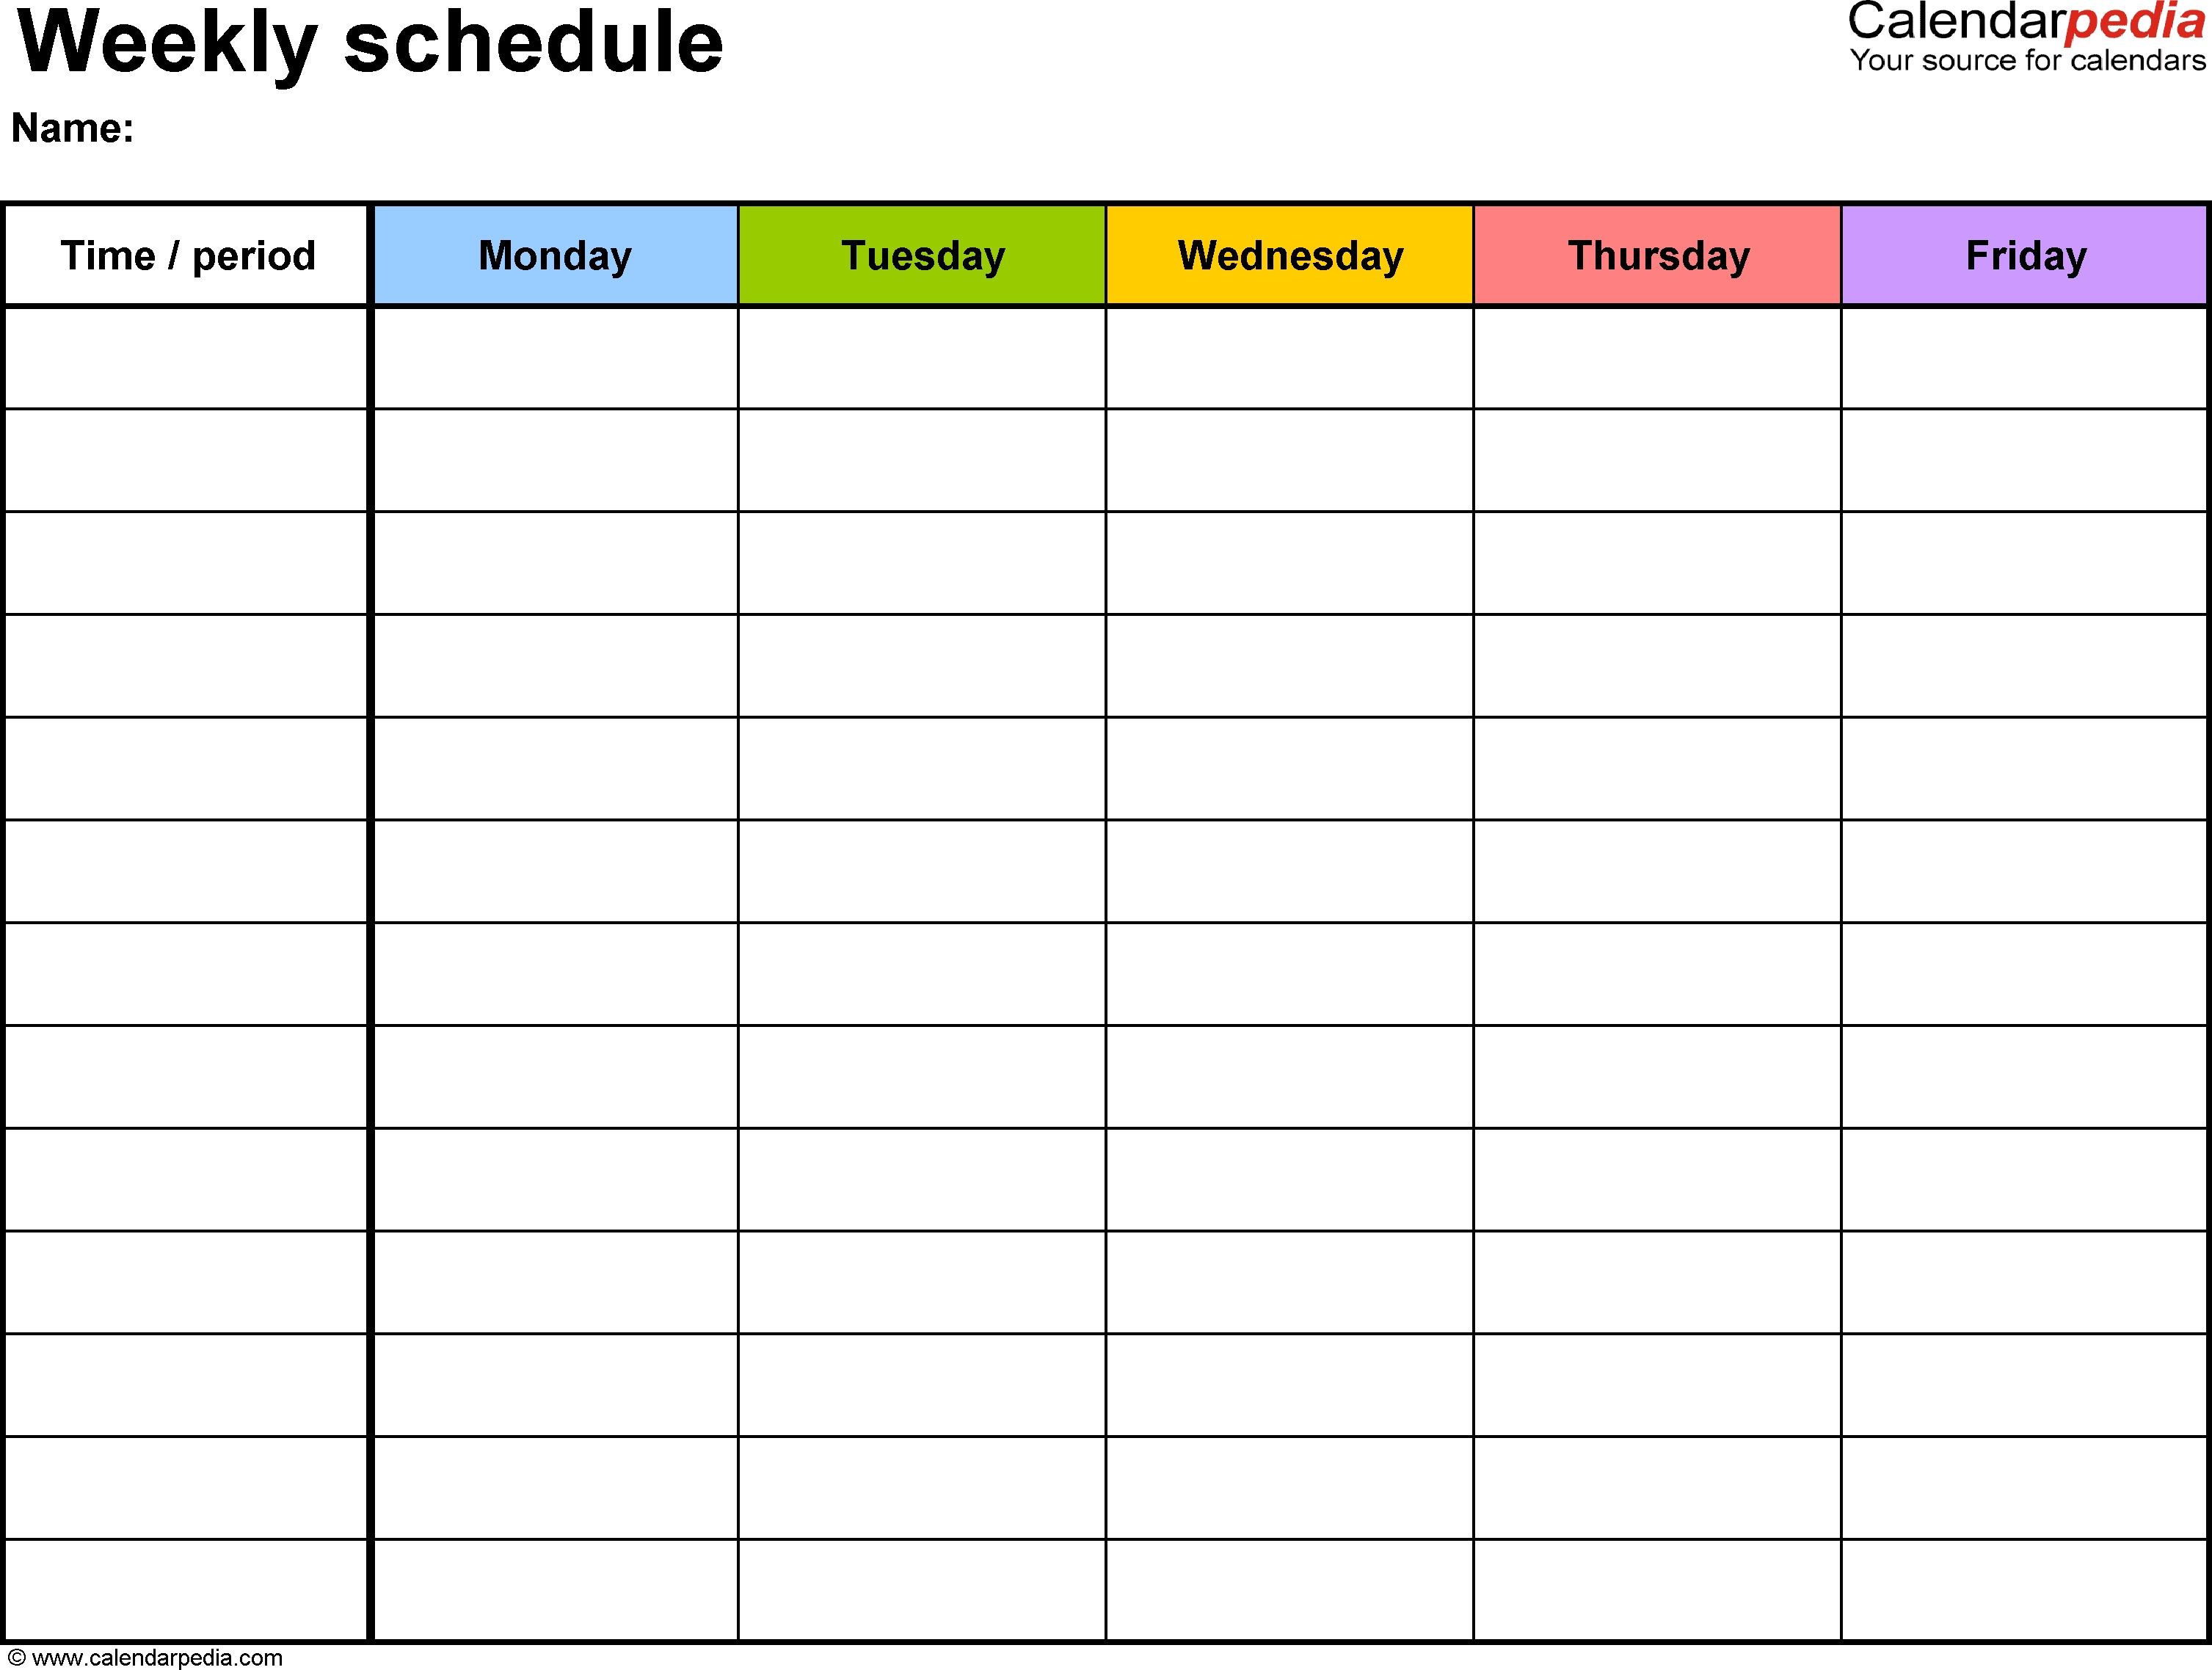 Free Weekly Schedule Templates For Pdf - 18 Templates-Monday To Friday Planner Templates 2020